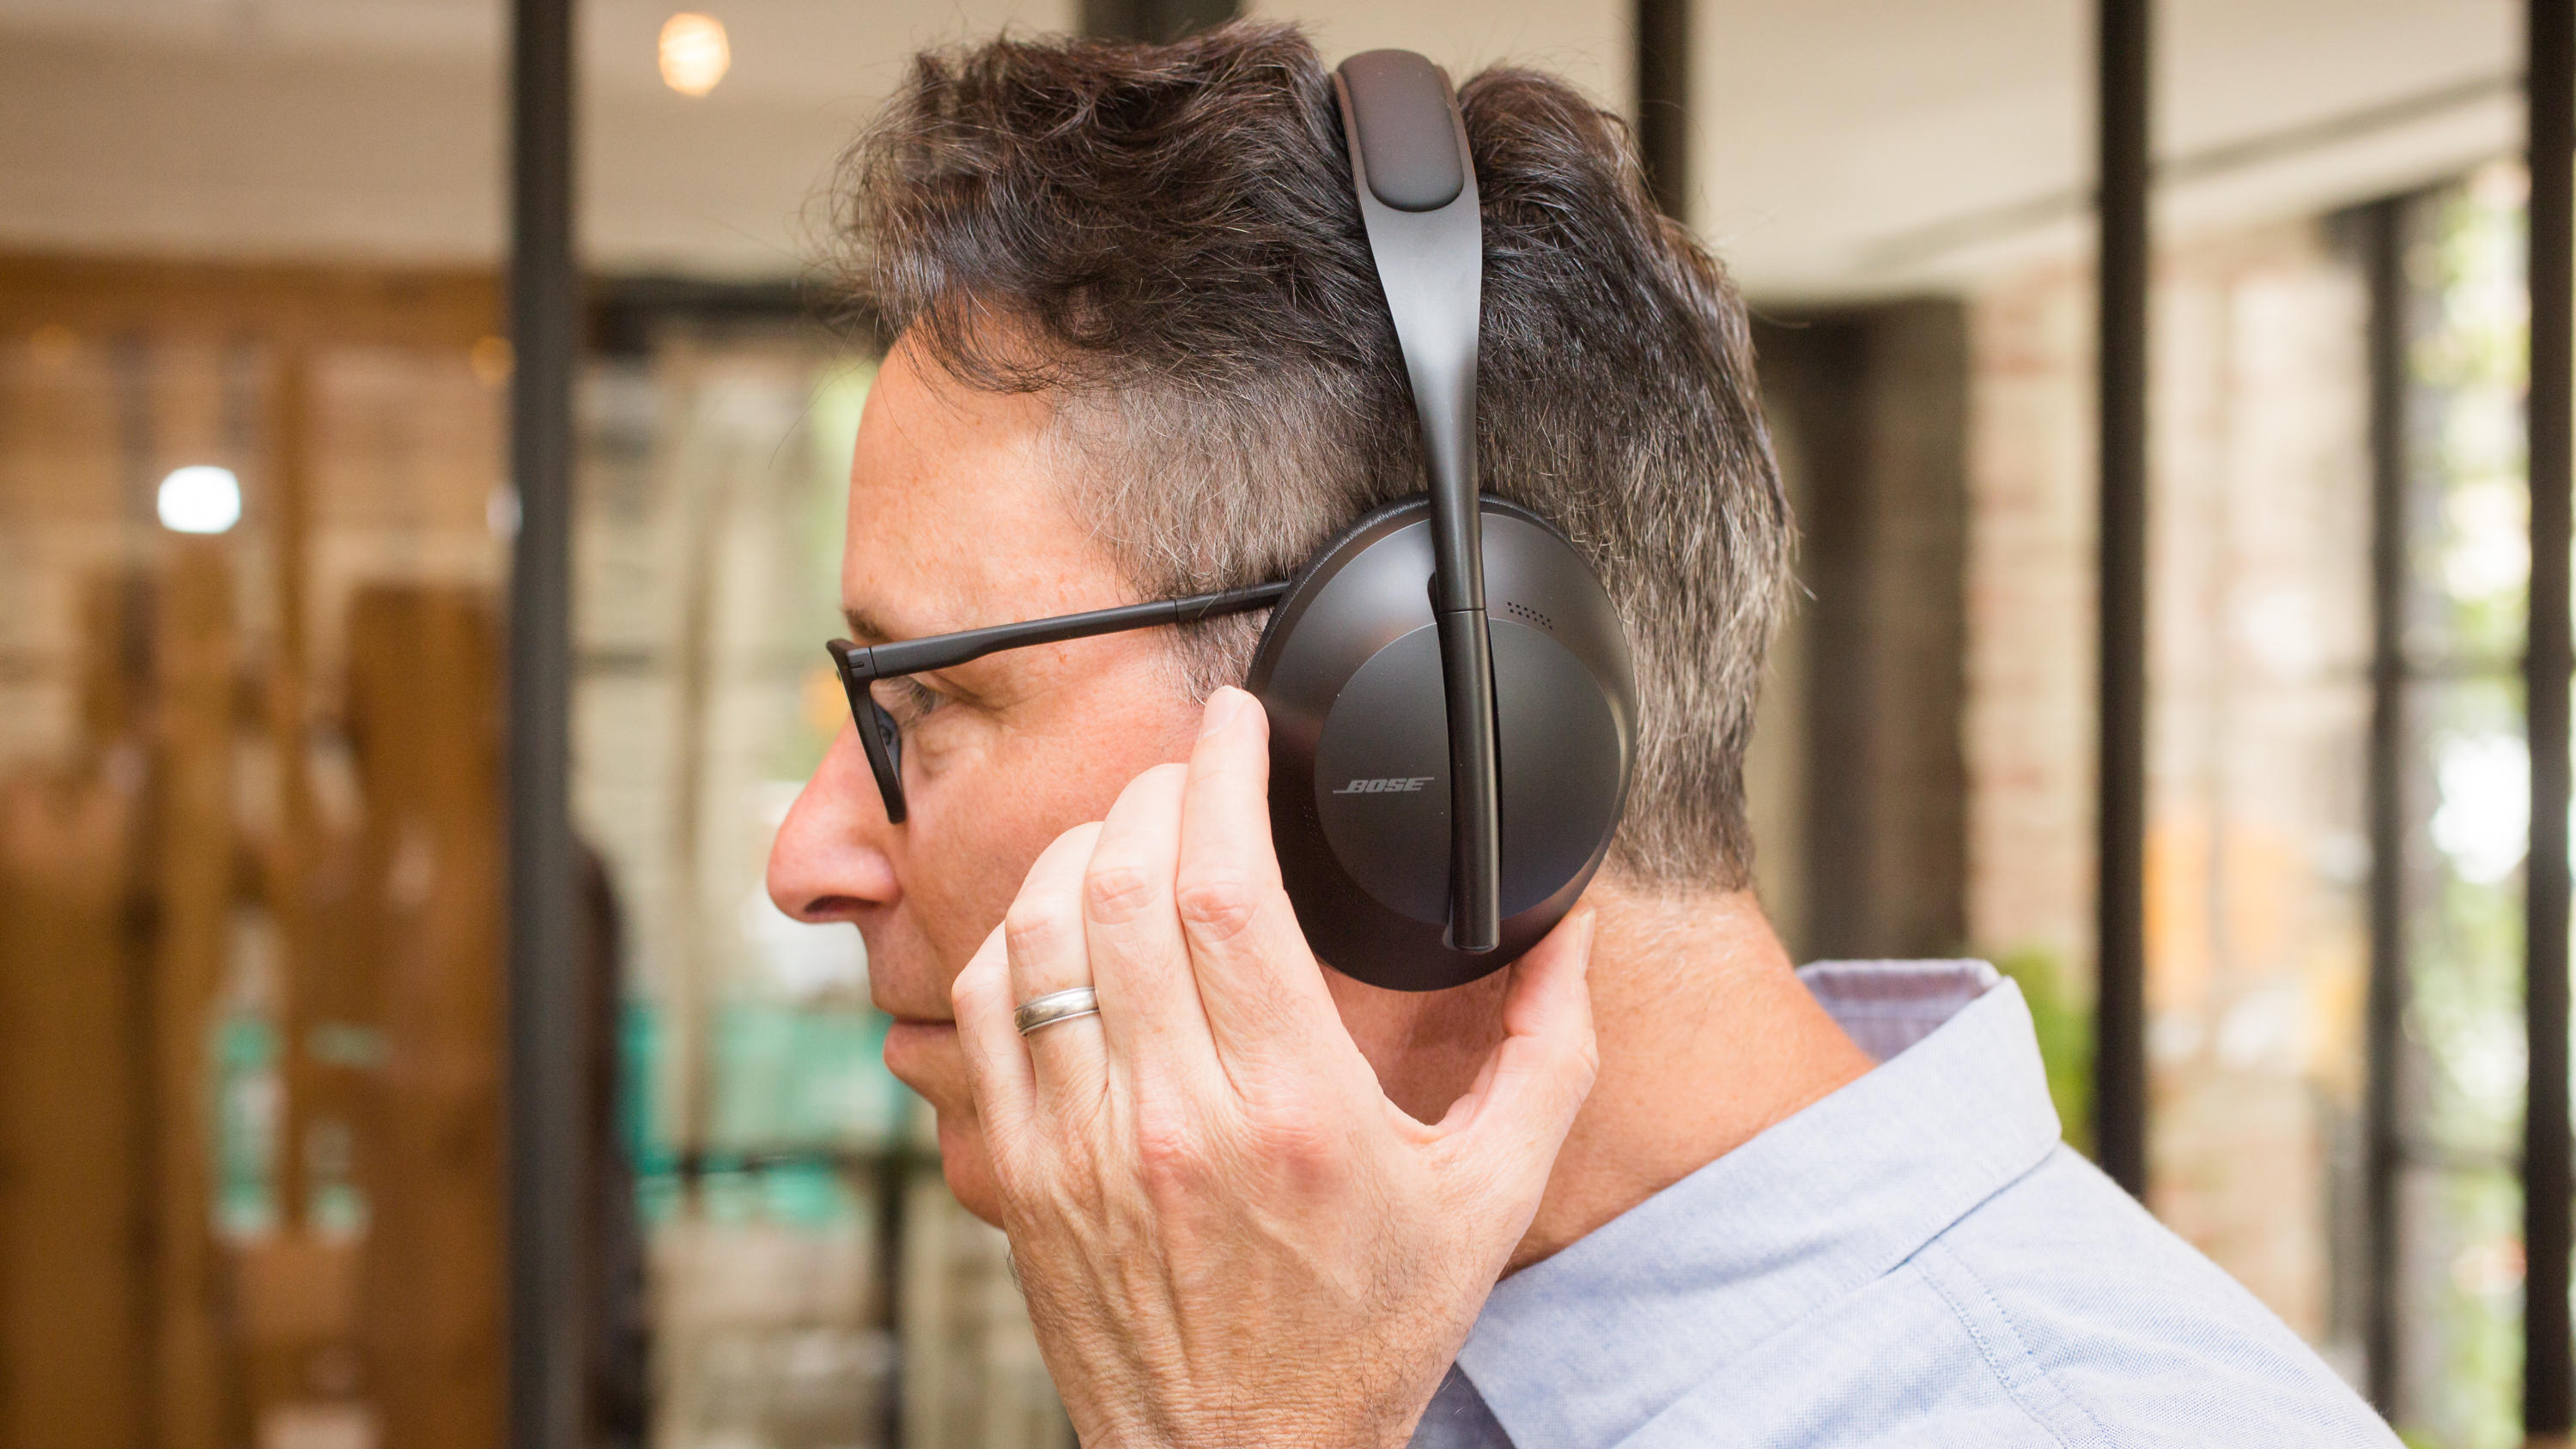 All the best headphones for working at home in 2021